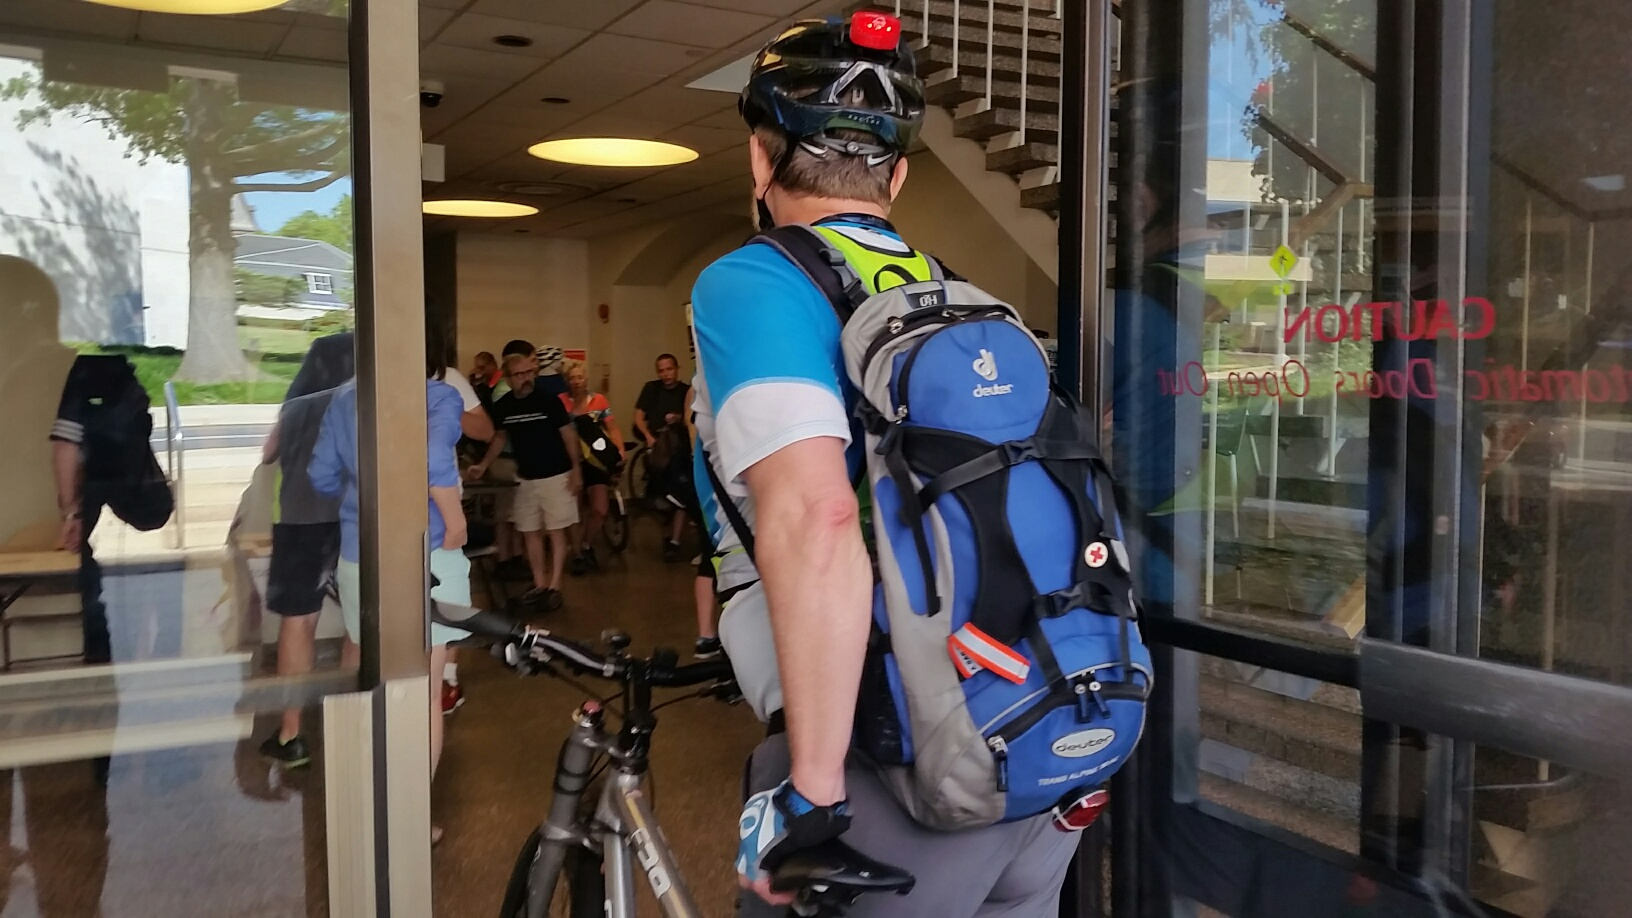 Attendees arrive for the Great Montgomery Bike Summit at Montgomery County Council headquarters in Rockville, Md. on Saturday, July 18, 2016. (WTOP/Kathy Stewart)